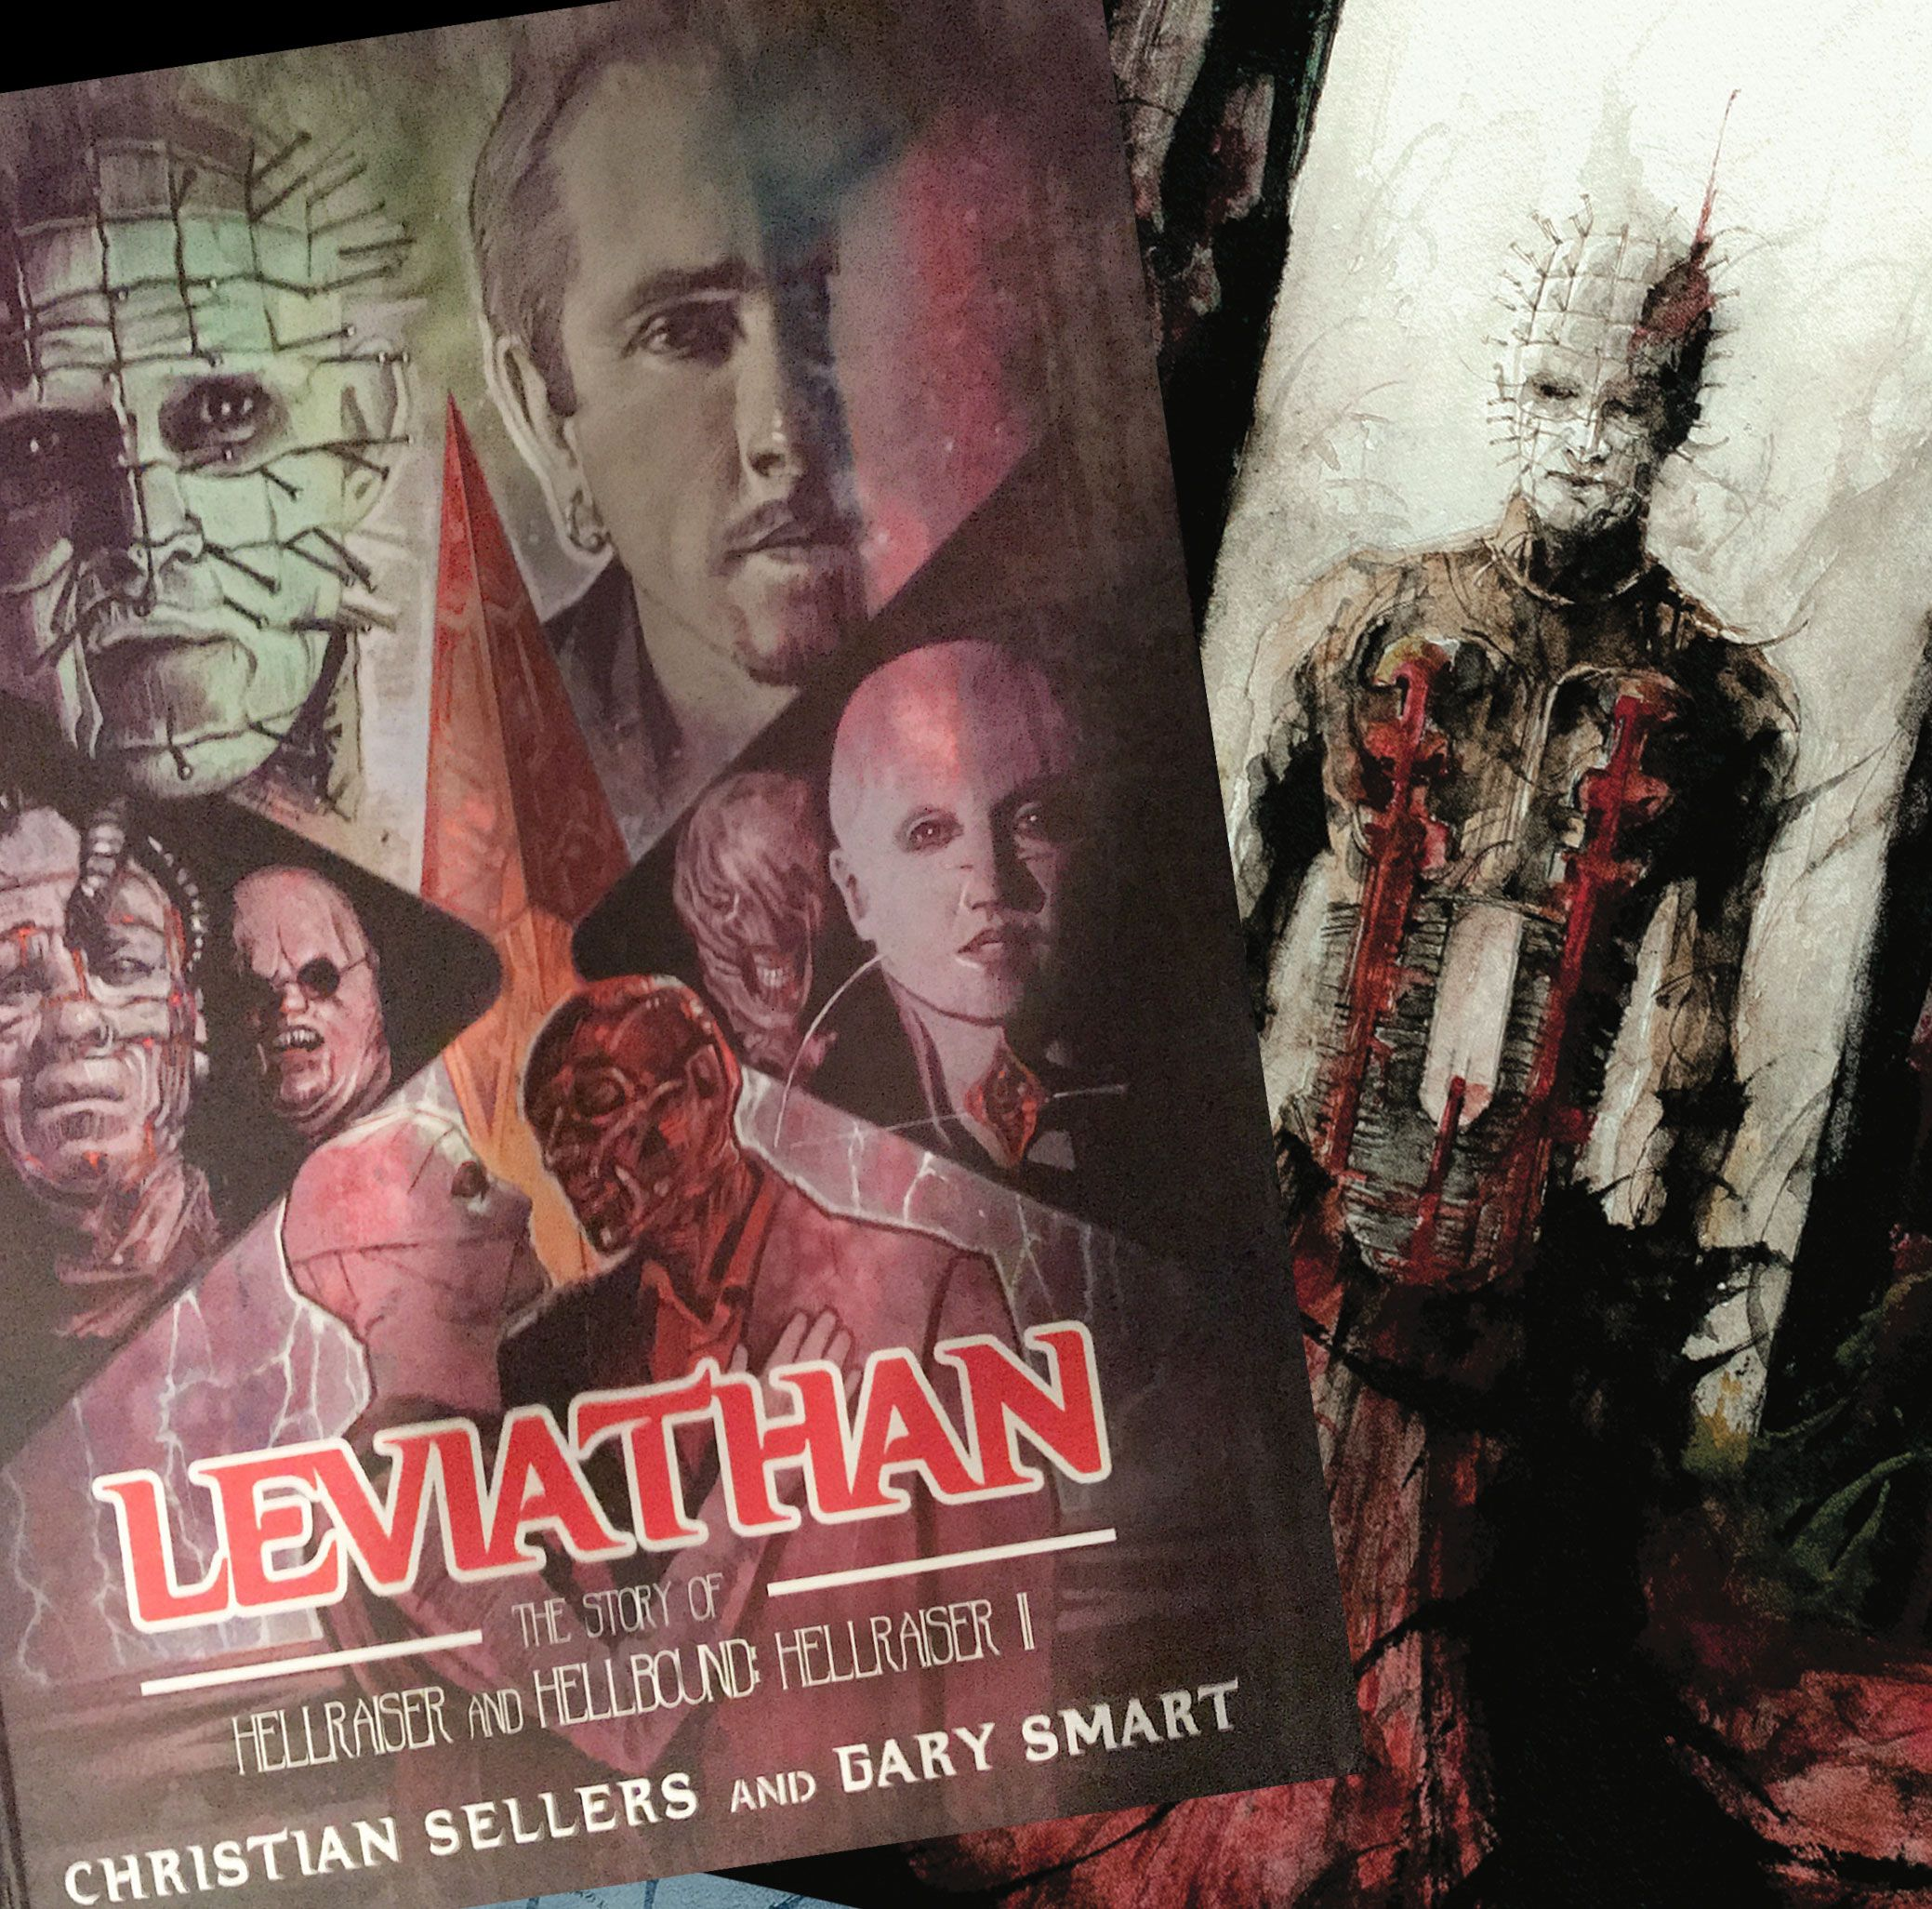 leviathan the story of hellraiser